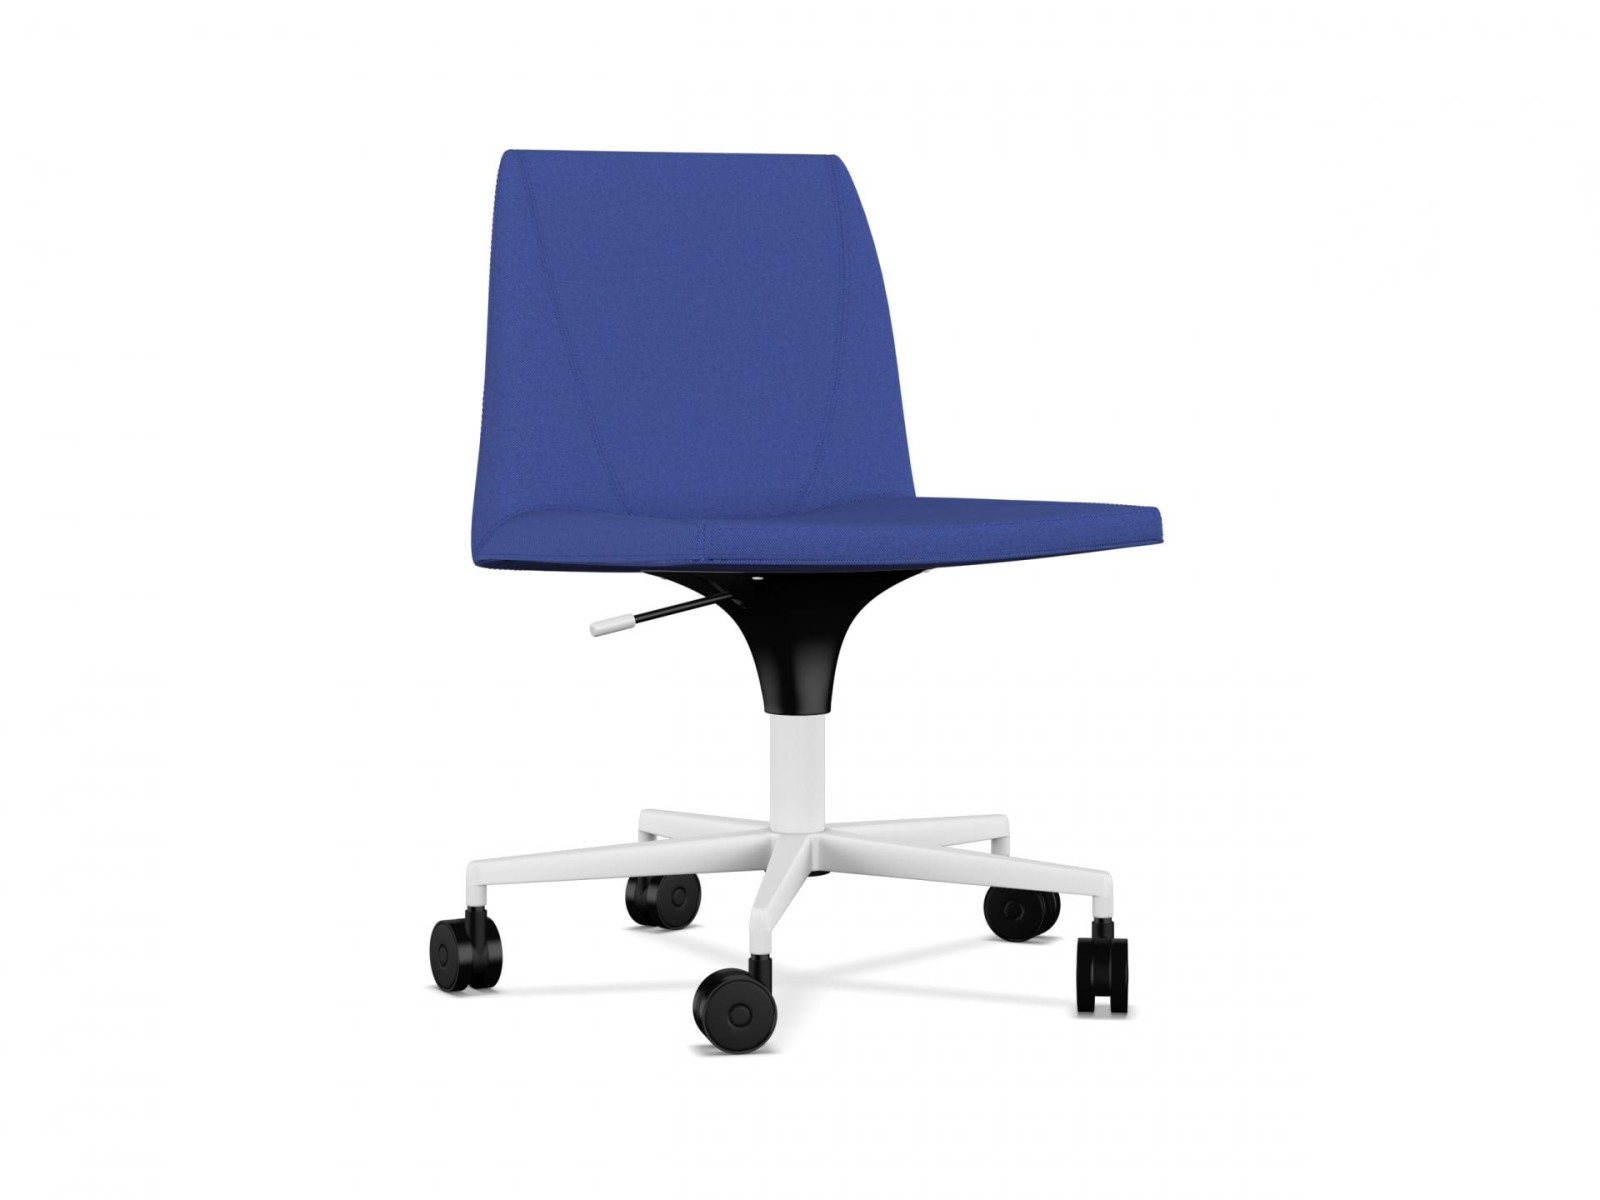 Plate 50 5 base Chair with Castors A7244 - Field 762 blue, White lacquered aluminium, Black Plastic,